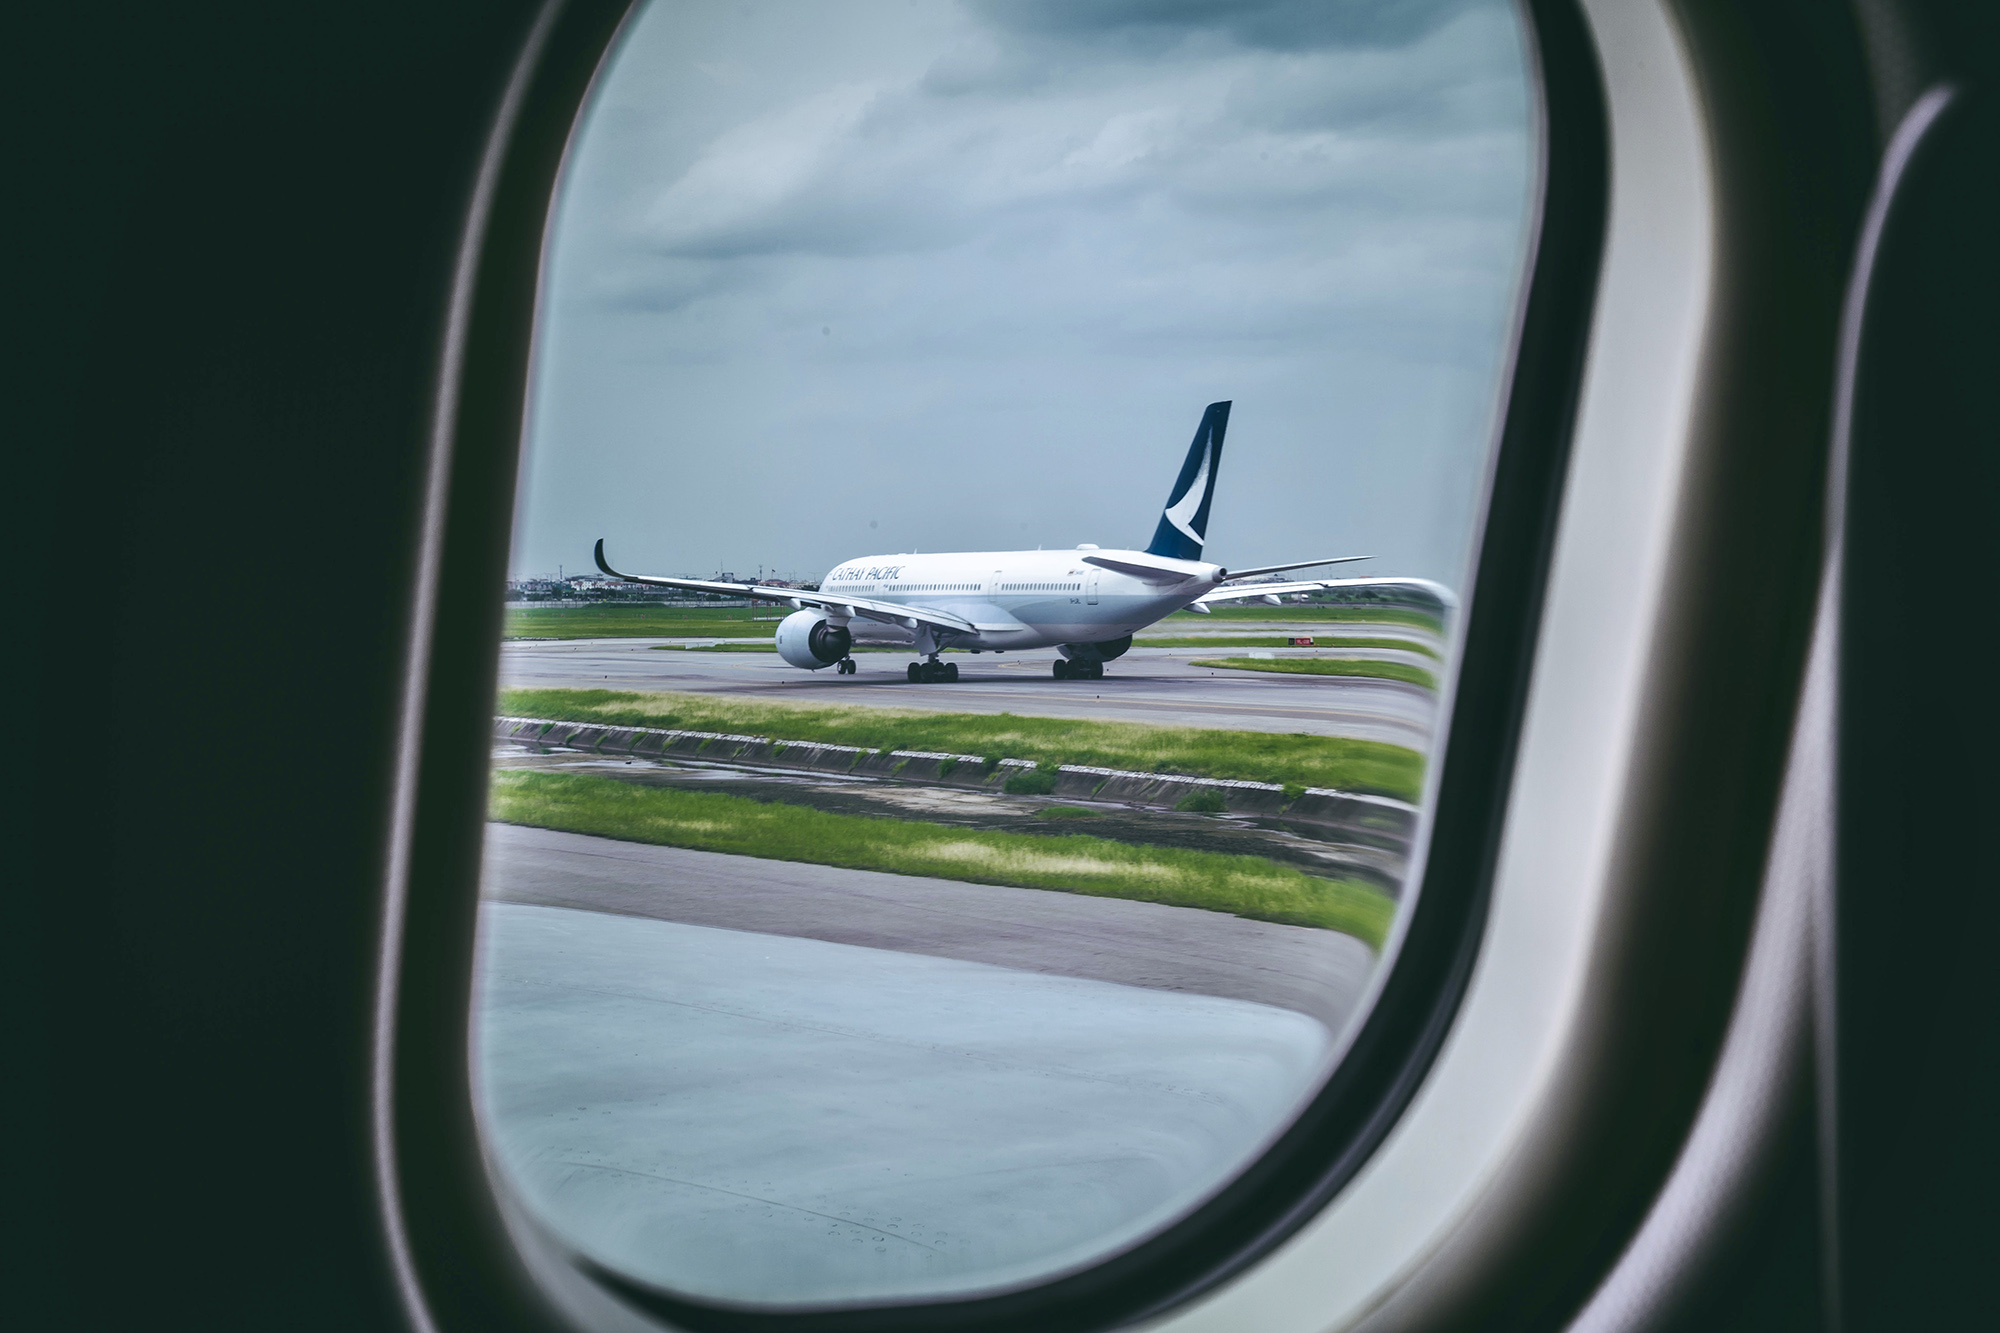 CX A350 from window (Kevin Bosc)